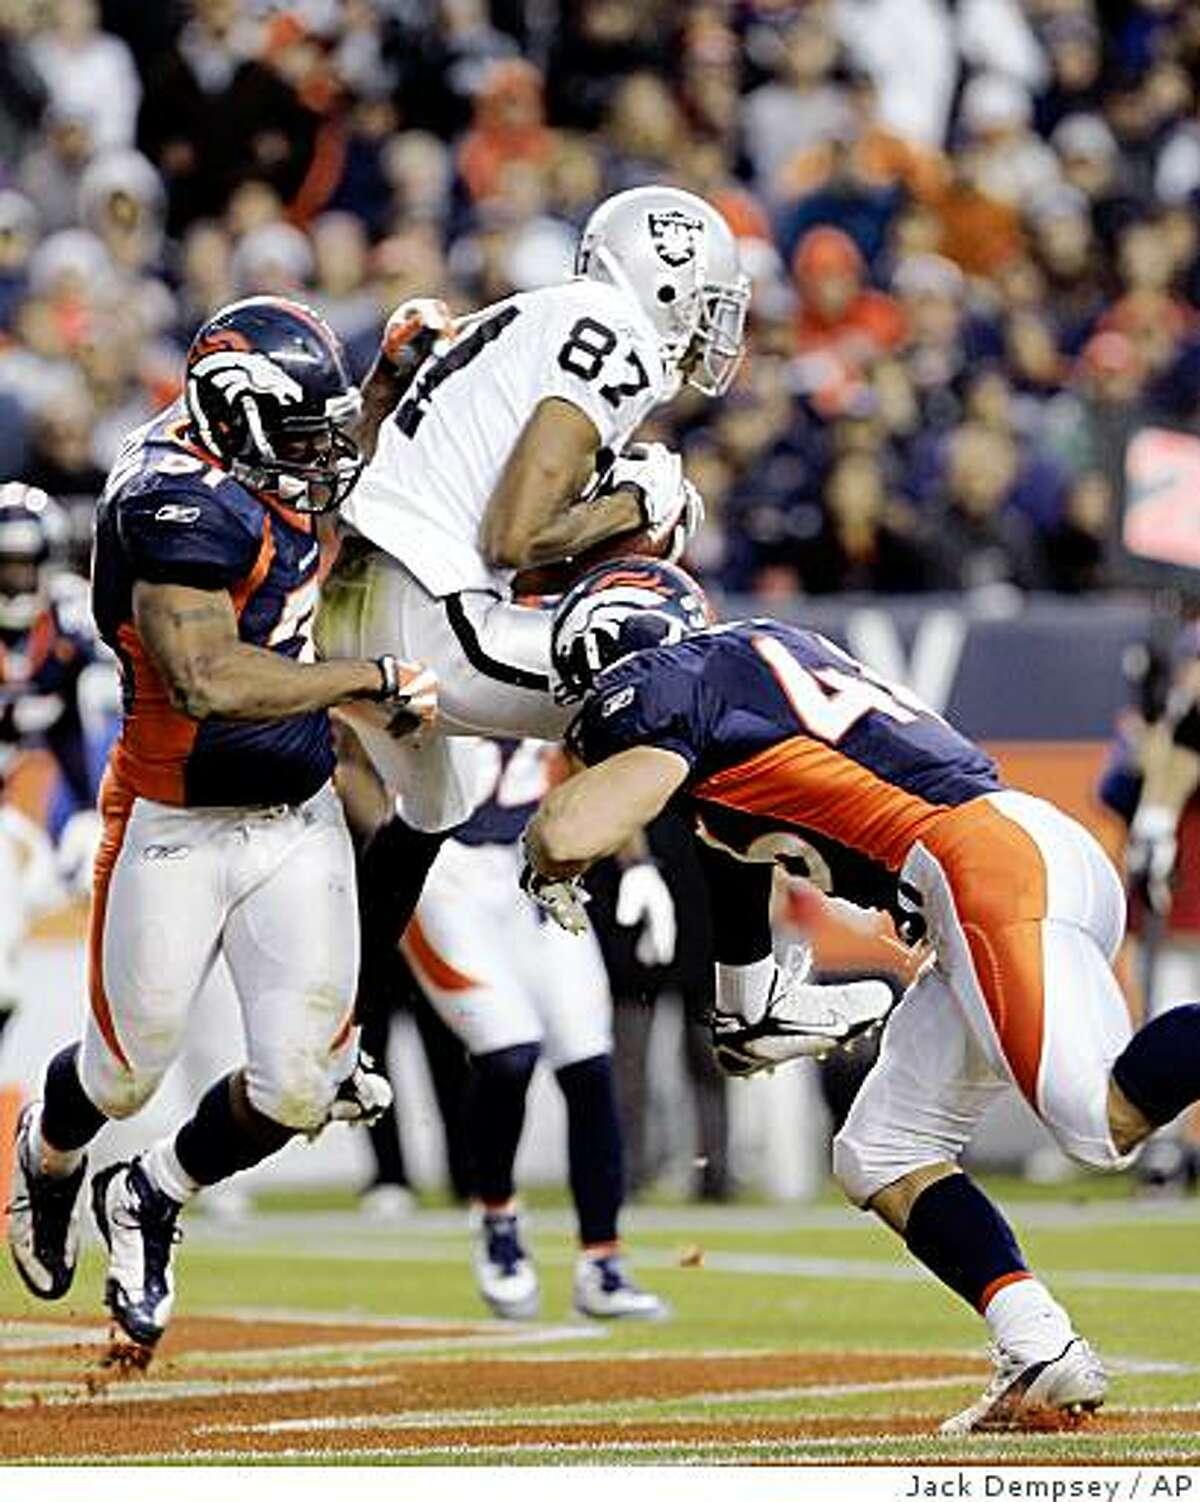 Oakland Raiders wide receiver Ashley Lelie (87) catches a touchdown pass against Denver Broncos linebacker Jamie Winborn (51) and Spencer Larsen (46) during the fourth quarter in Denver, Sunday, Nov. 23, 2008. The Raiders beat the Broncos 31-10.